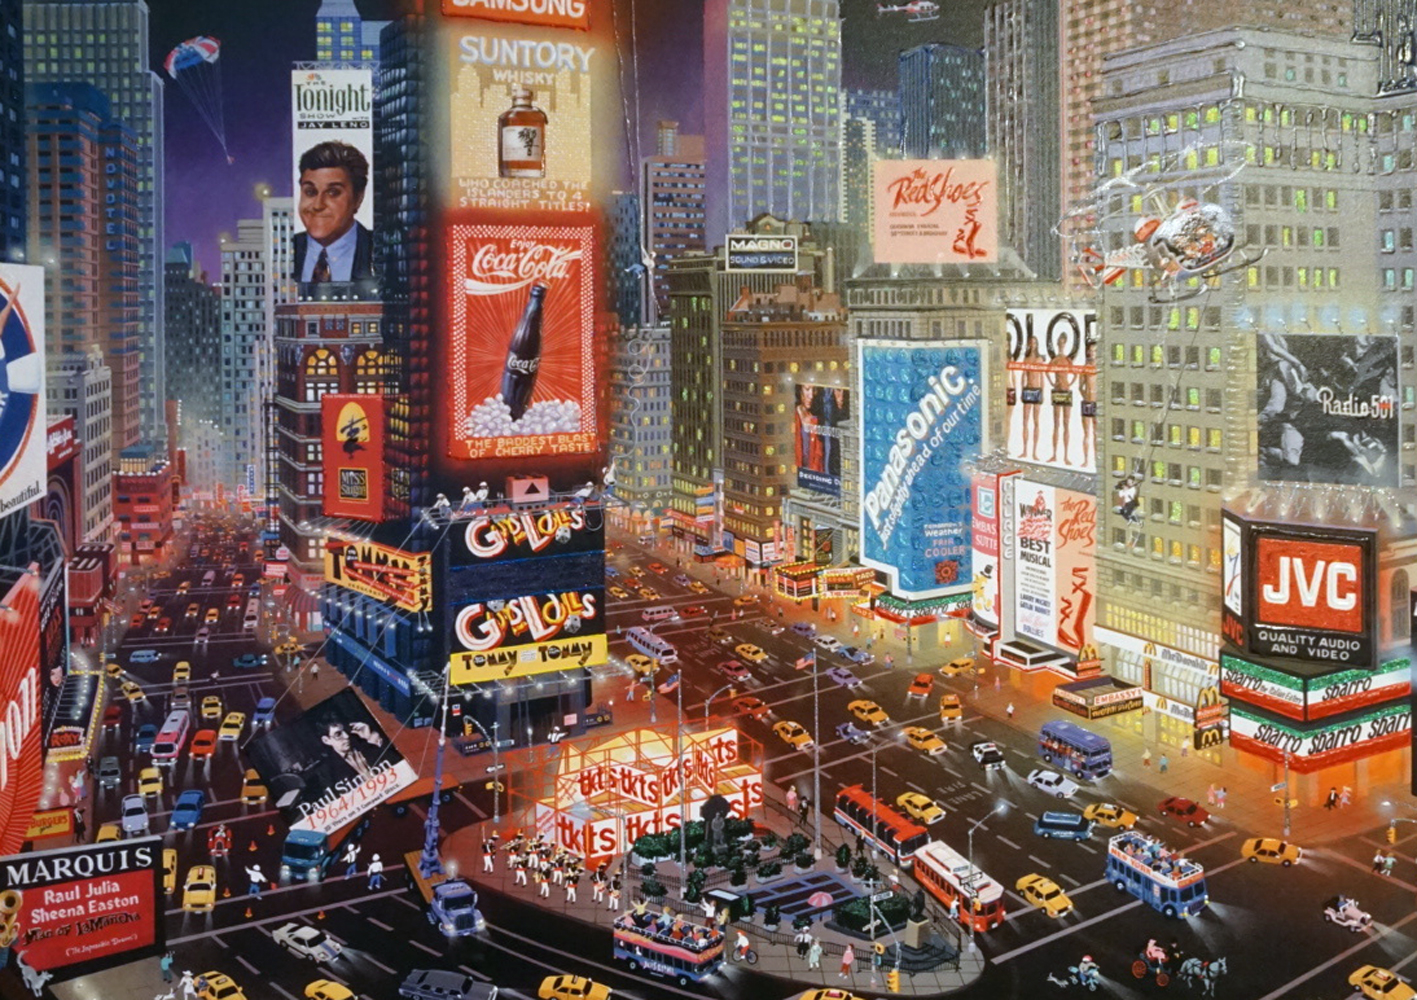 An Evening in Time Square Embellished 2013